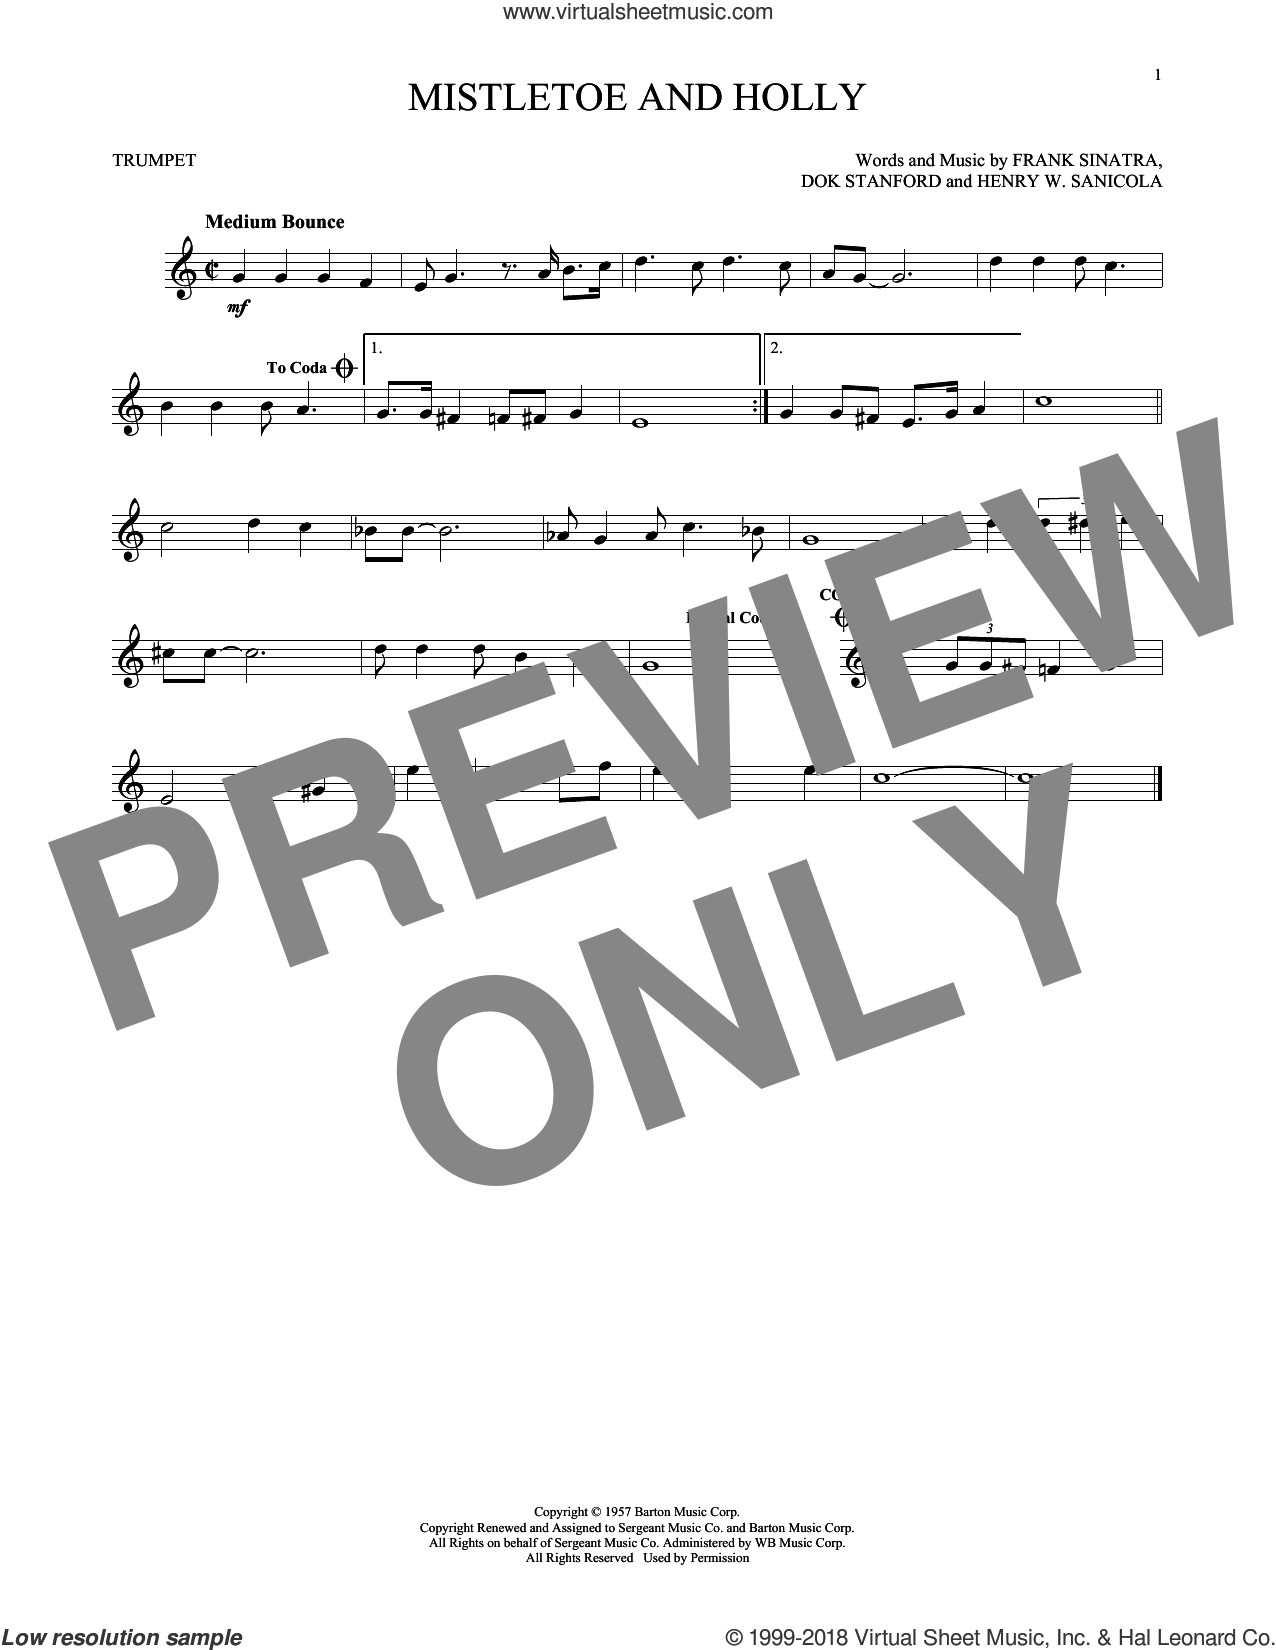 Mistletoe And Holly sheet music for trumpet solo by Frank Sinatra, Dok Stanford and Henry W. Sanicola, intermediate skill level